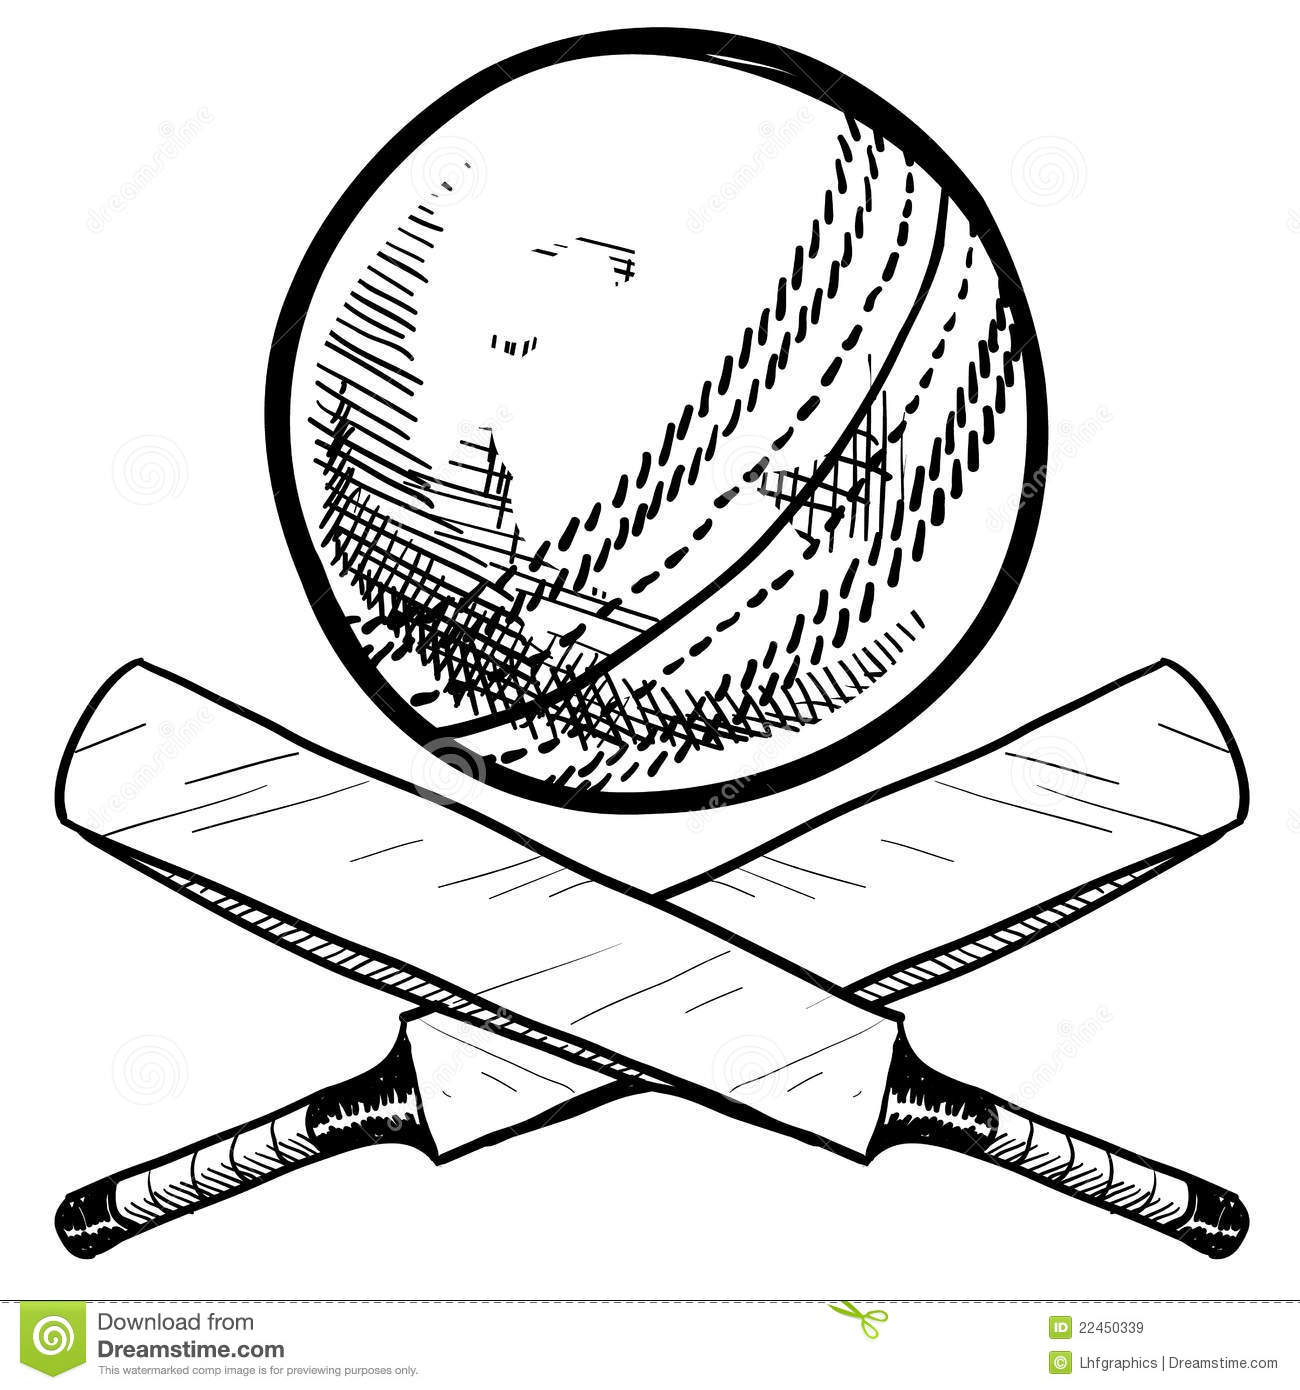 cricket bat and ball drawing - Easy Sports Drawings